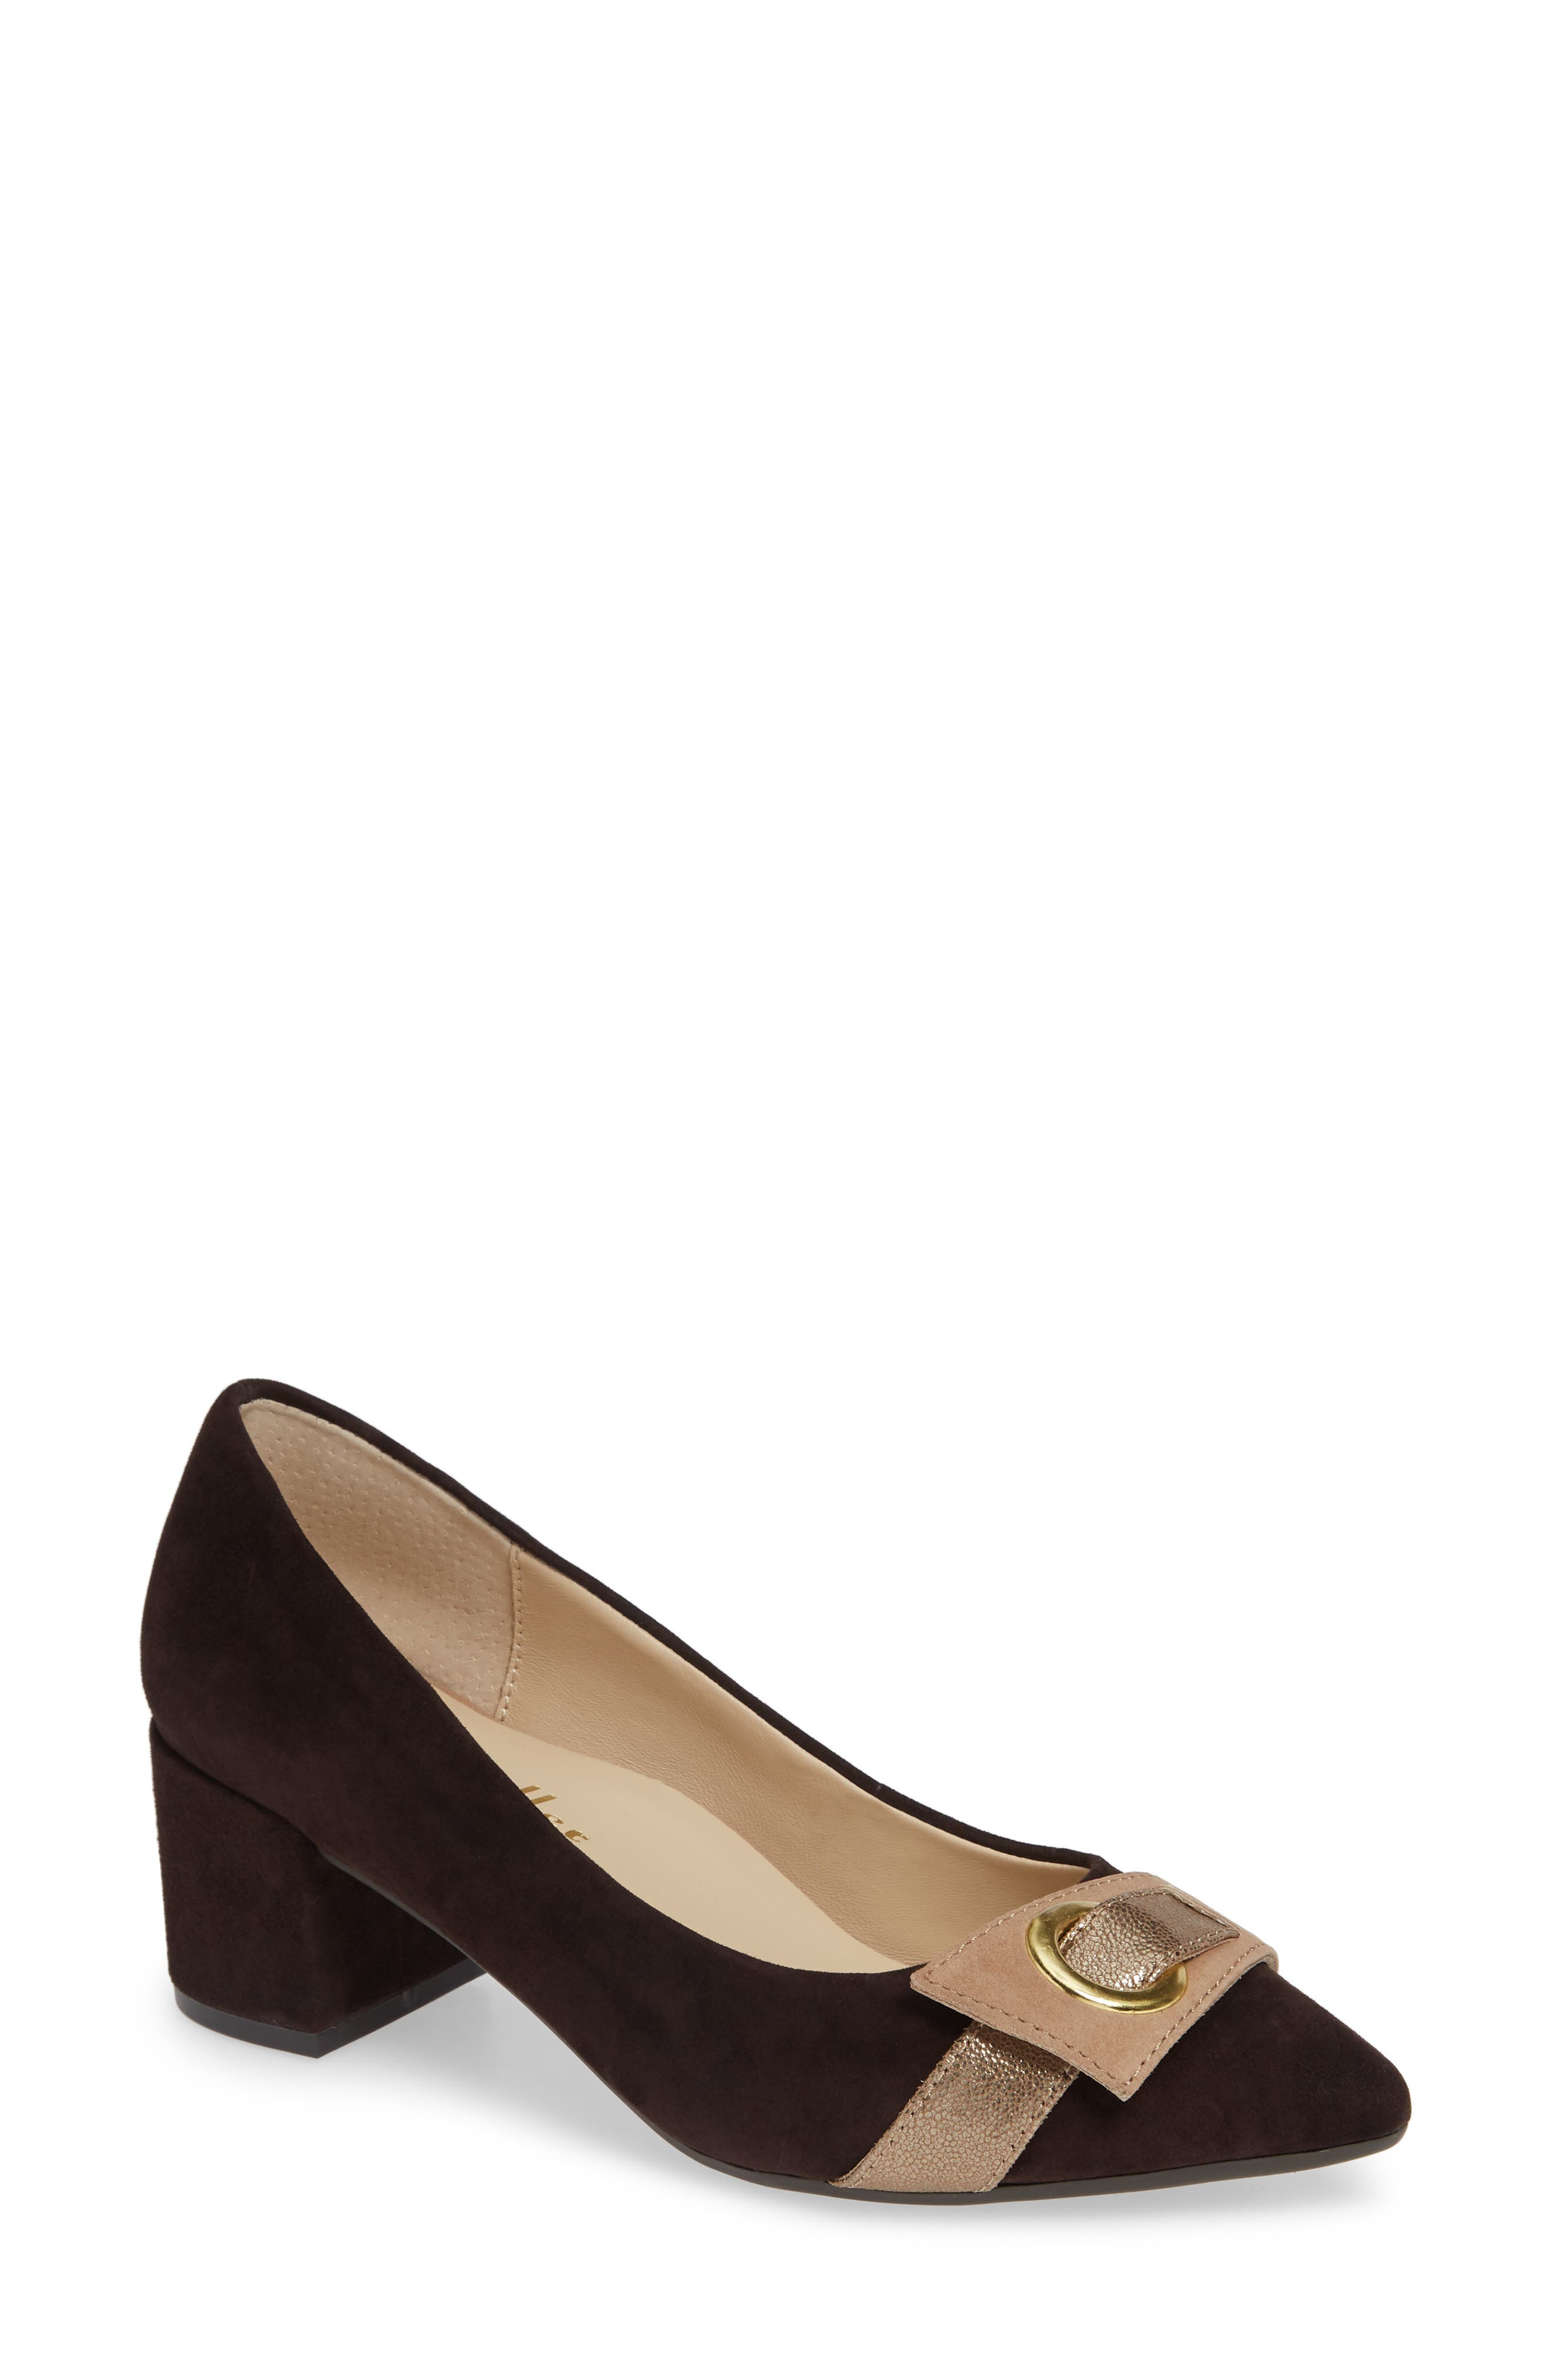 Image of BETTYE MULLER CONCEPTS Fritzi Suede Pump